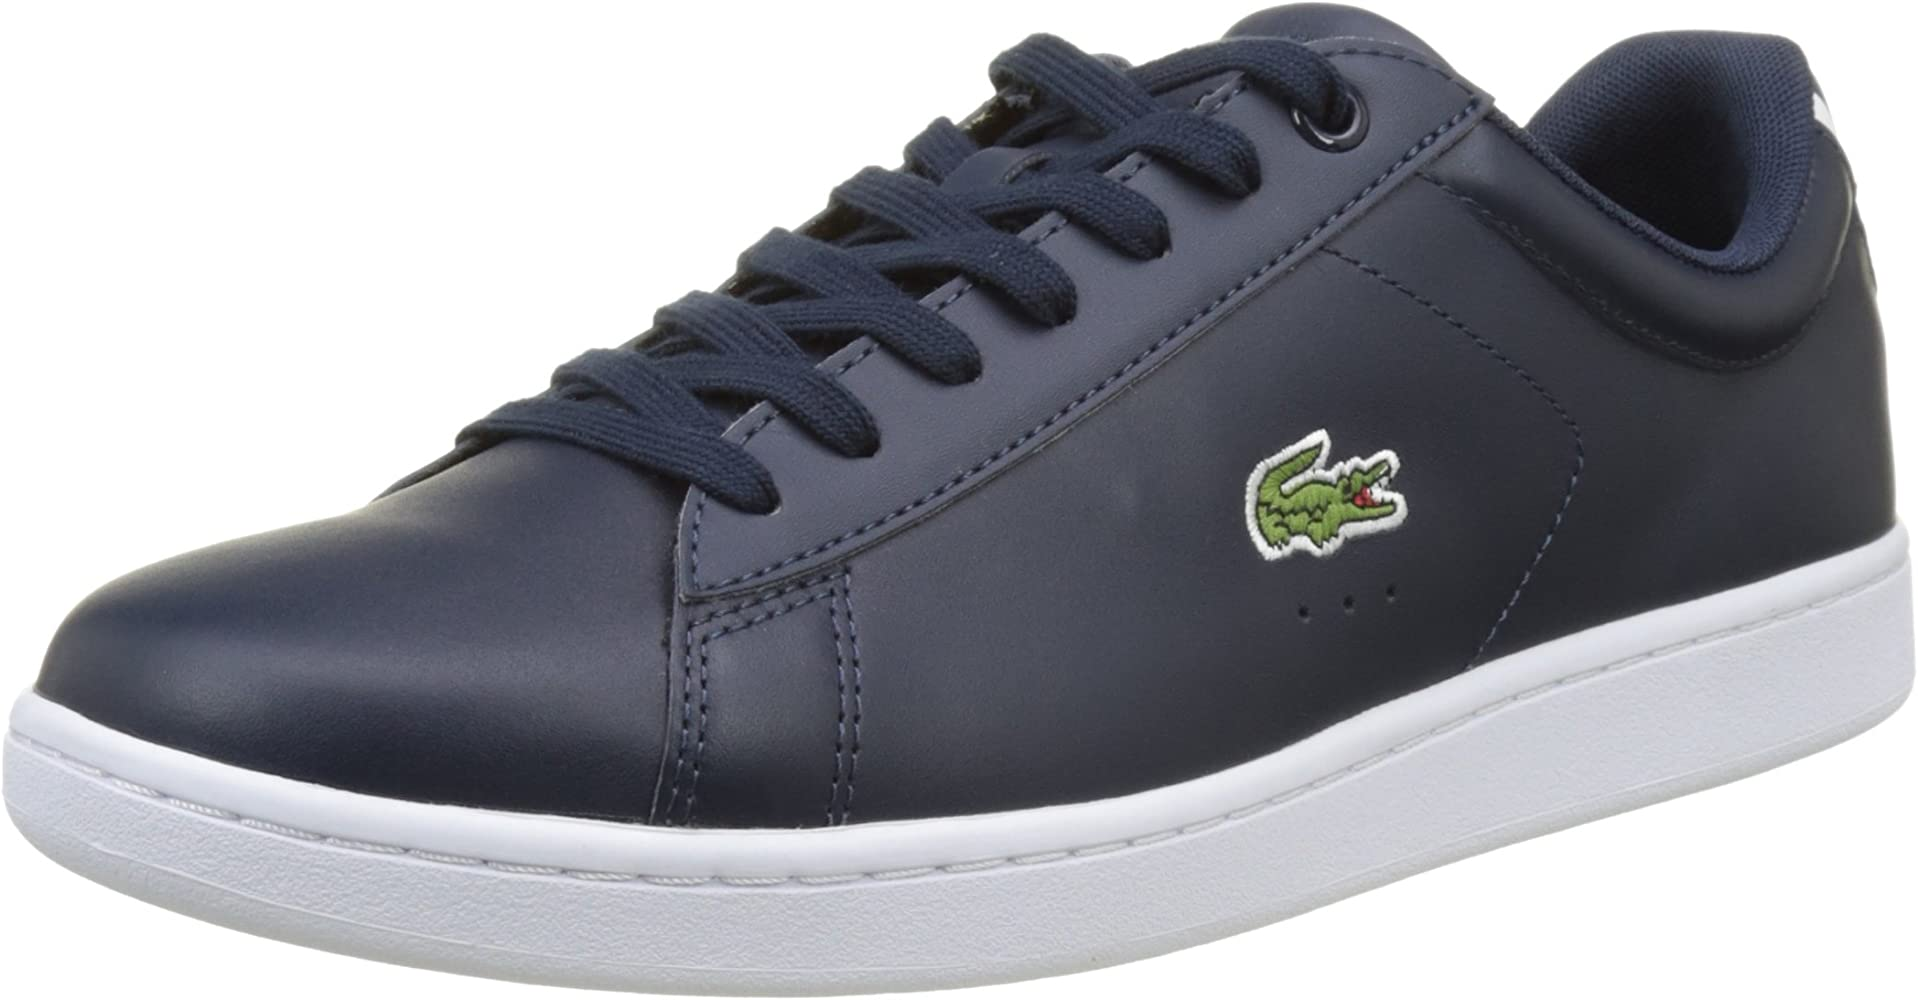 LACOSTE Flat Leather Logo chaussures chaussures chaussures